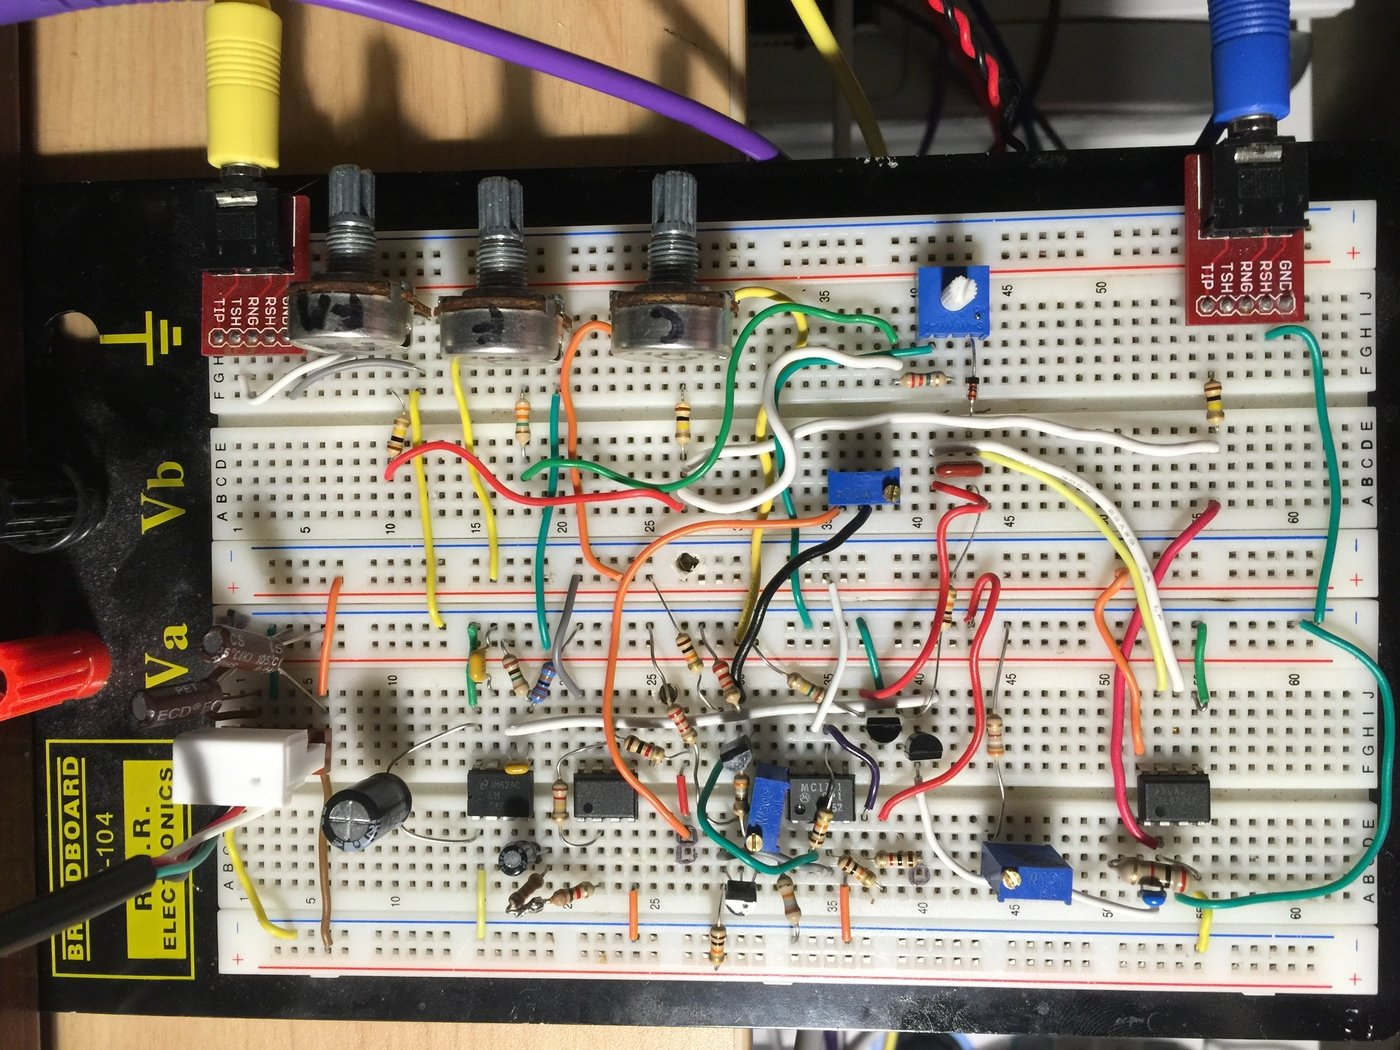 Vco Lm566 Implementation By Brian Tuley At Function Generator Circuit Car Tuning They Adjust Course Tune Fine And Fm Amount I Have Added An Additional Input For The Modulation Everything Tests Fully Functional